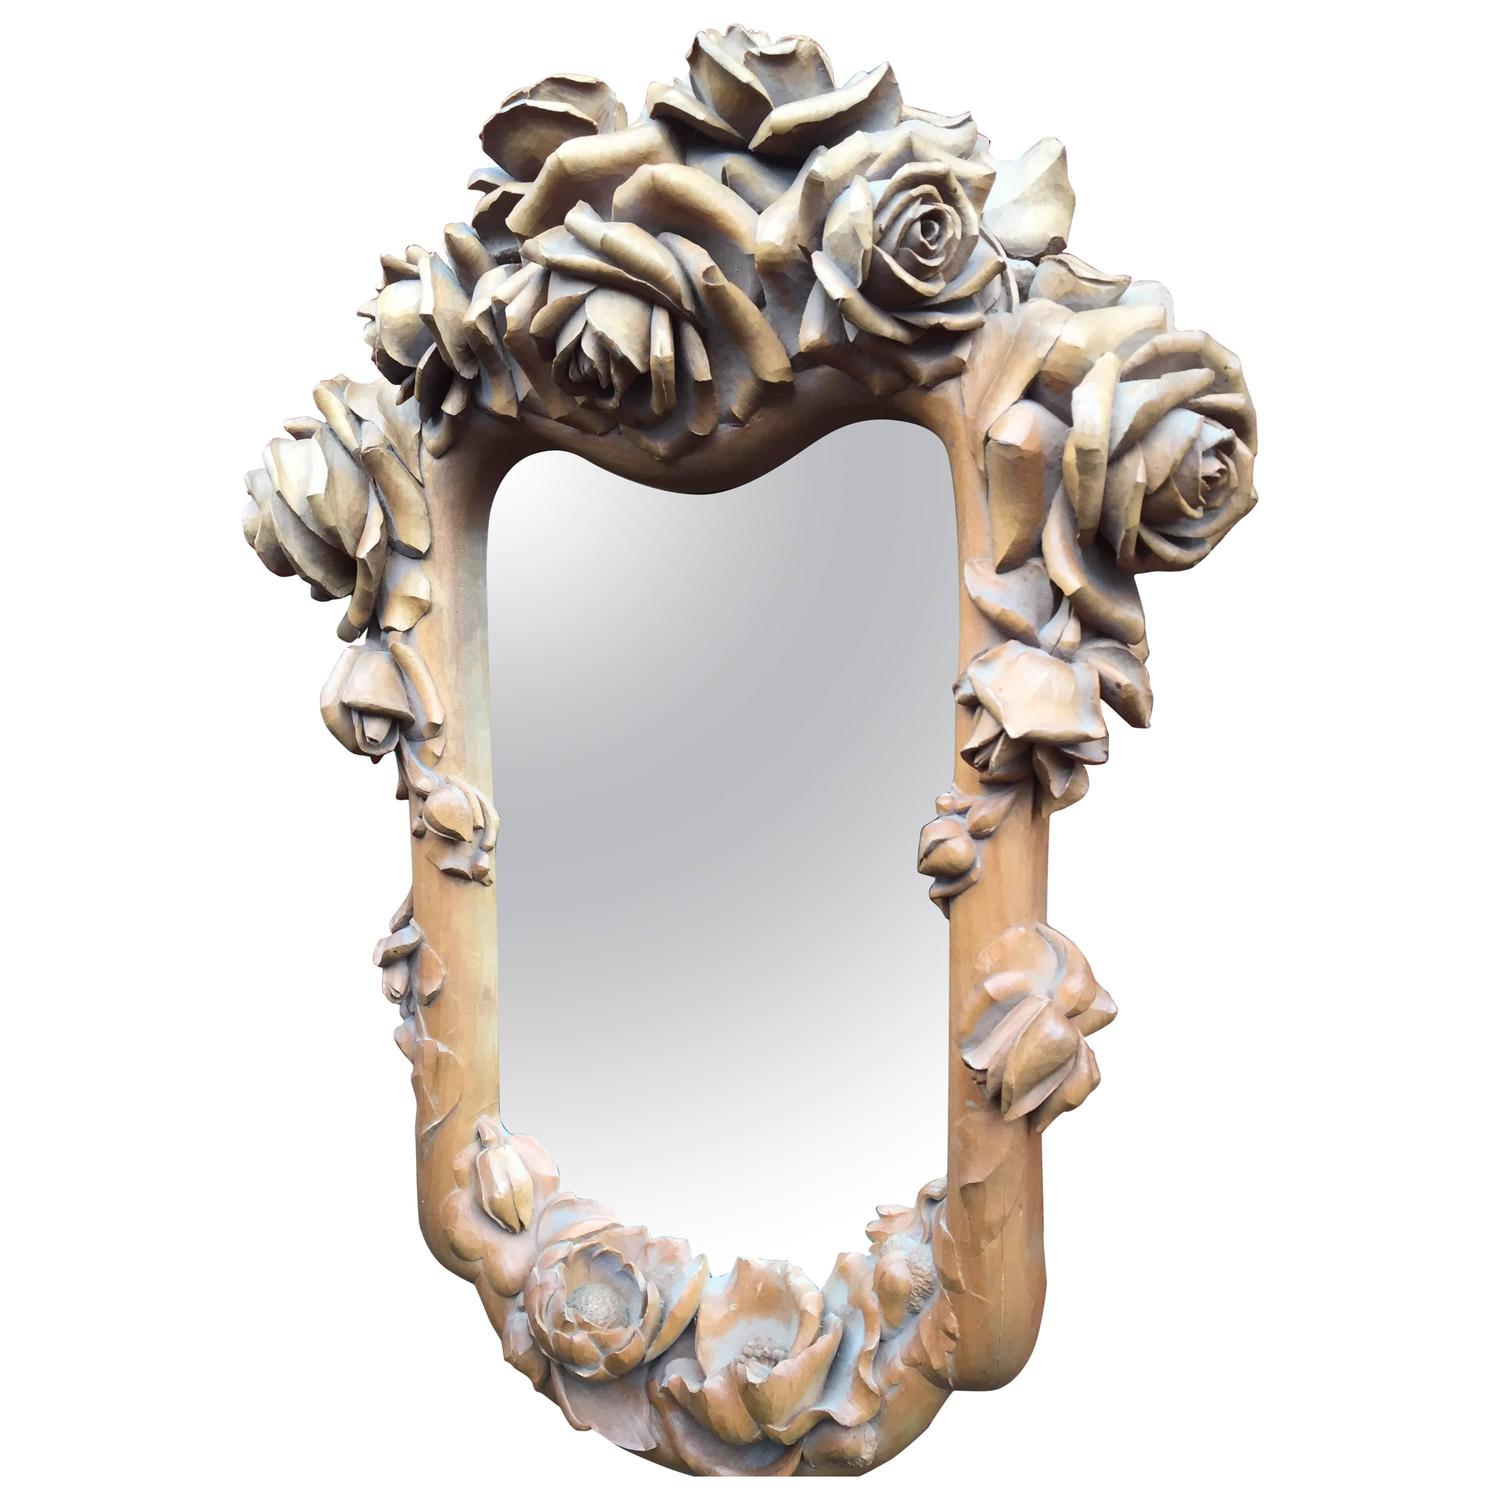 Masterly Carved Wood Art Wall Mirror Frame with Roses ...